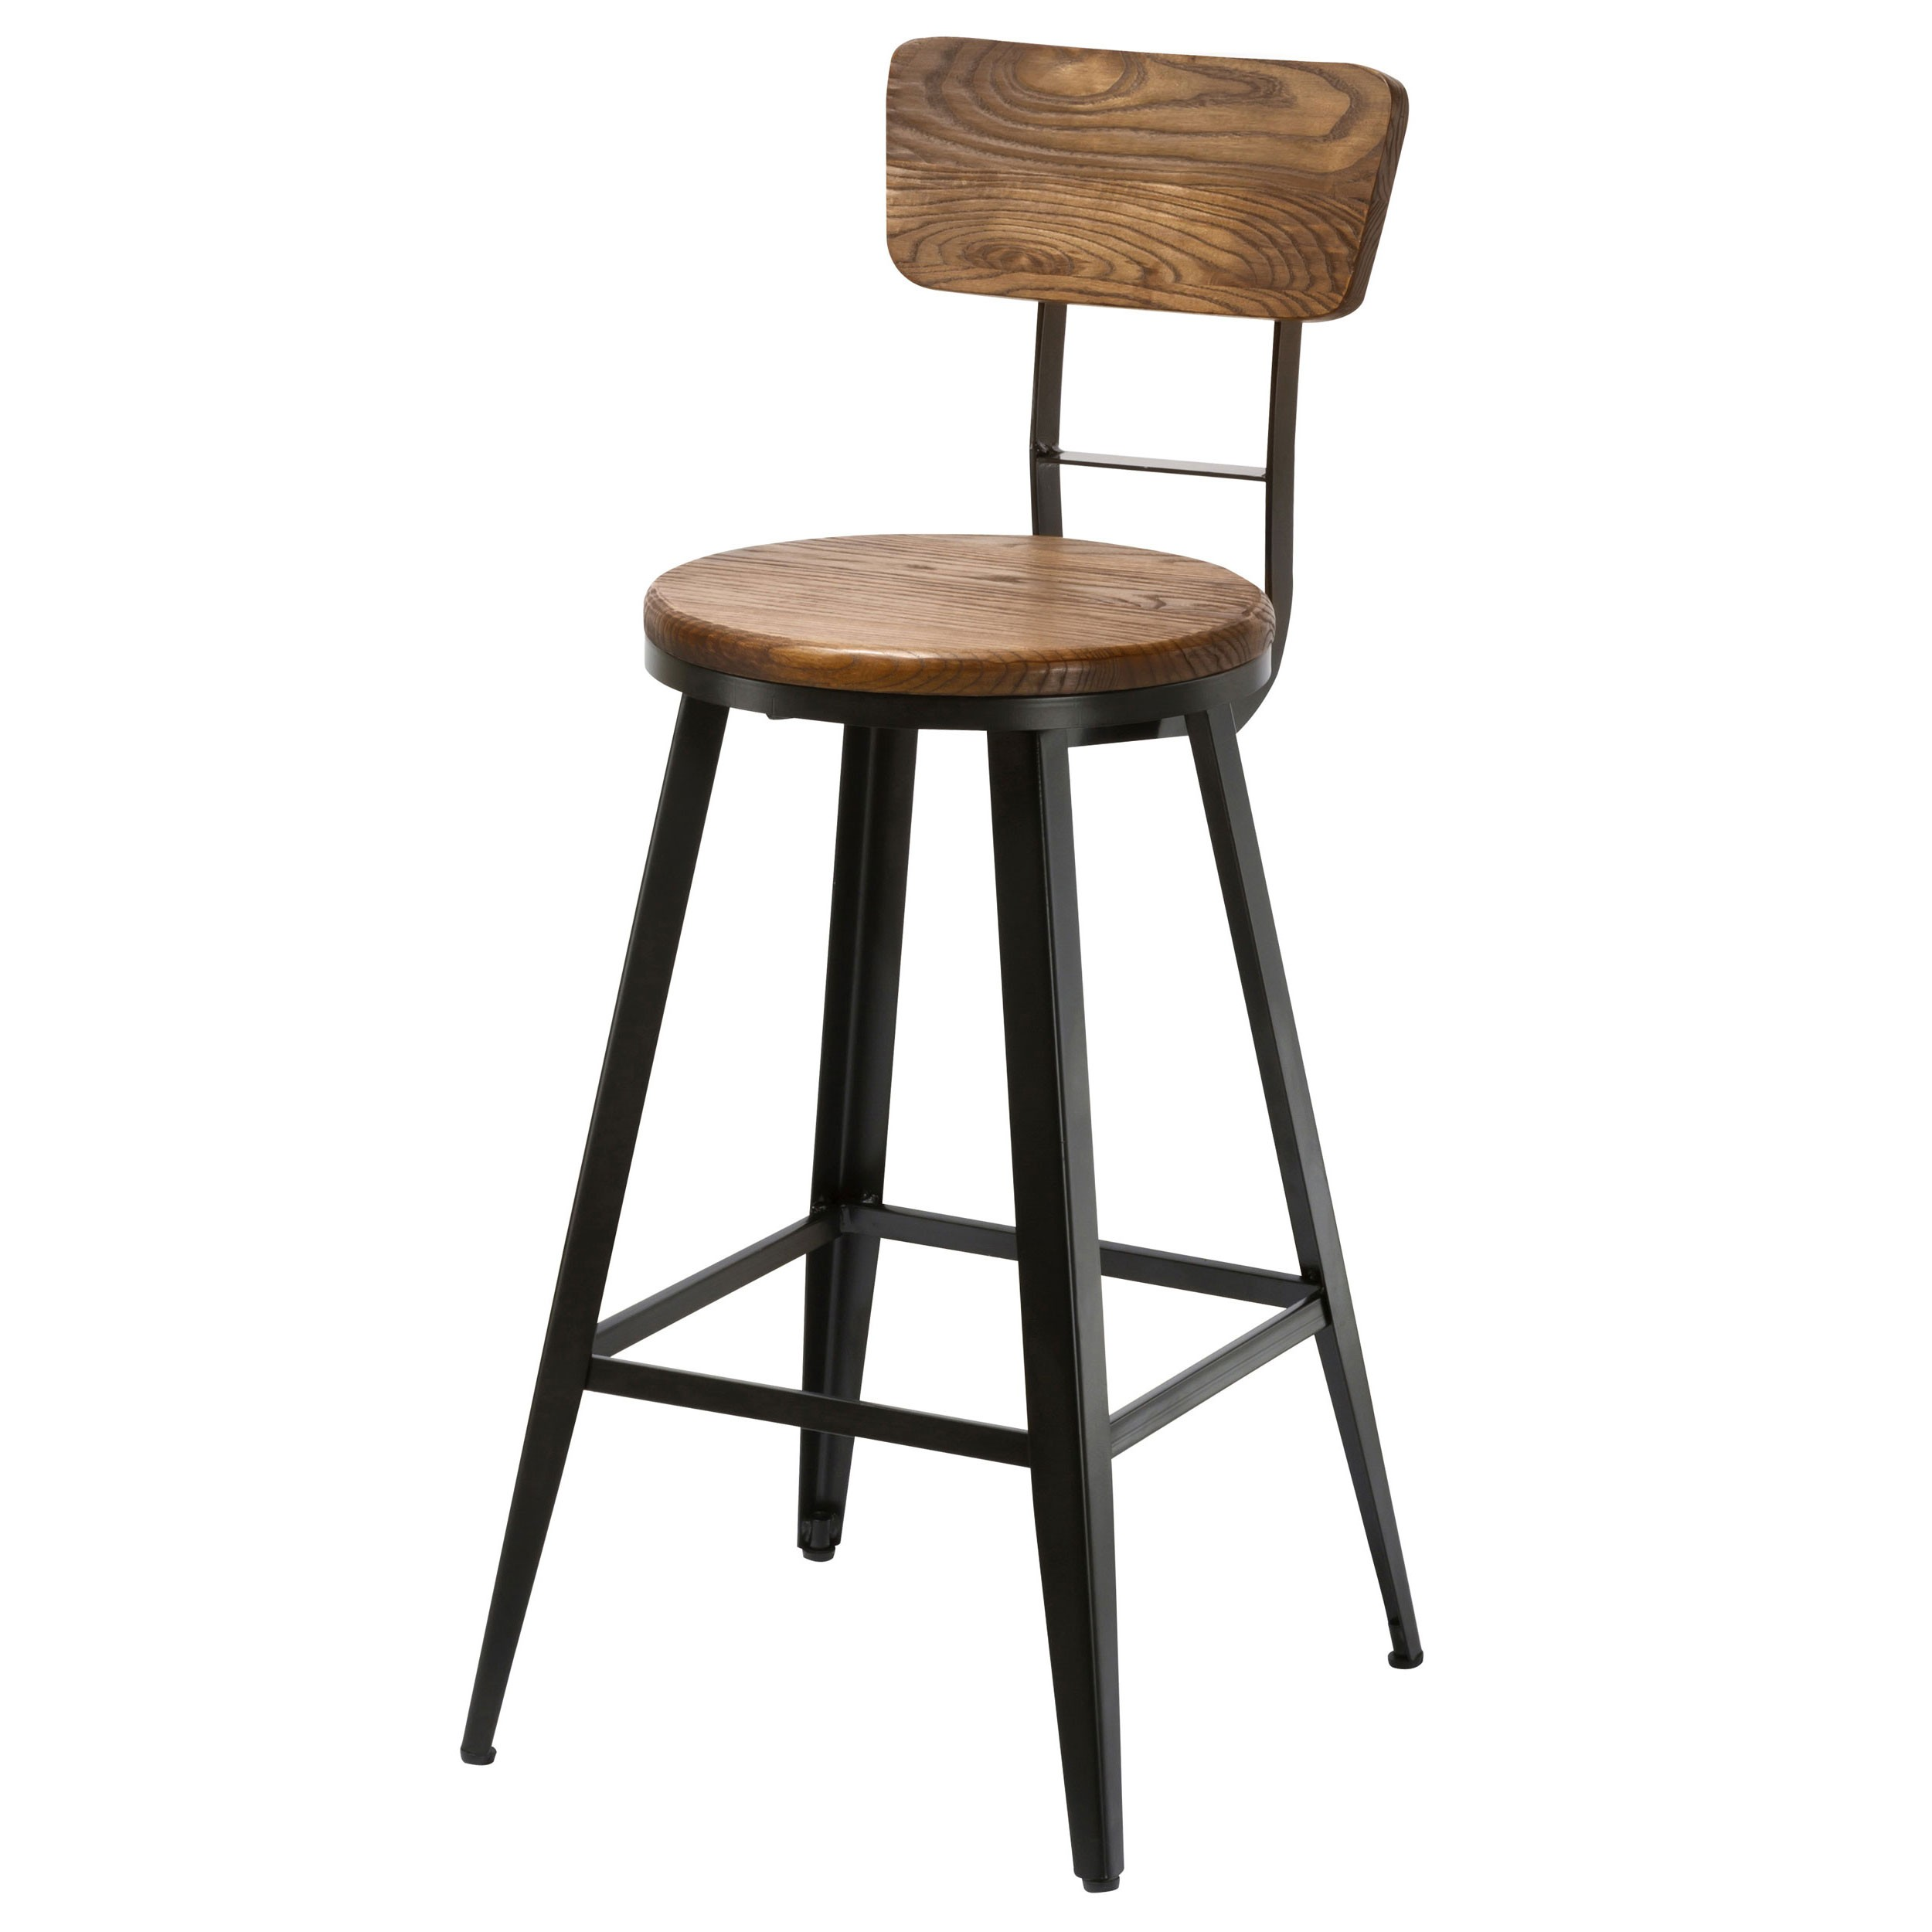 tabouret de bar midland commandez les tabourets de bar midland prix d 39 usine rdv d co. Black Bedroom Furniture Sets. Home Design Ideas